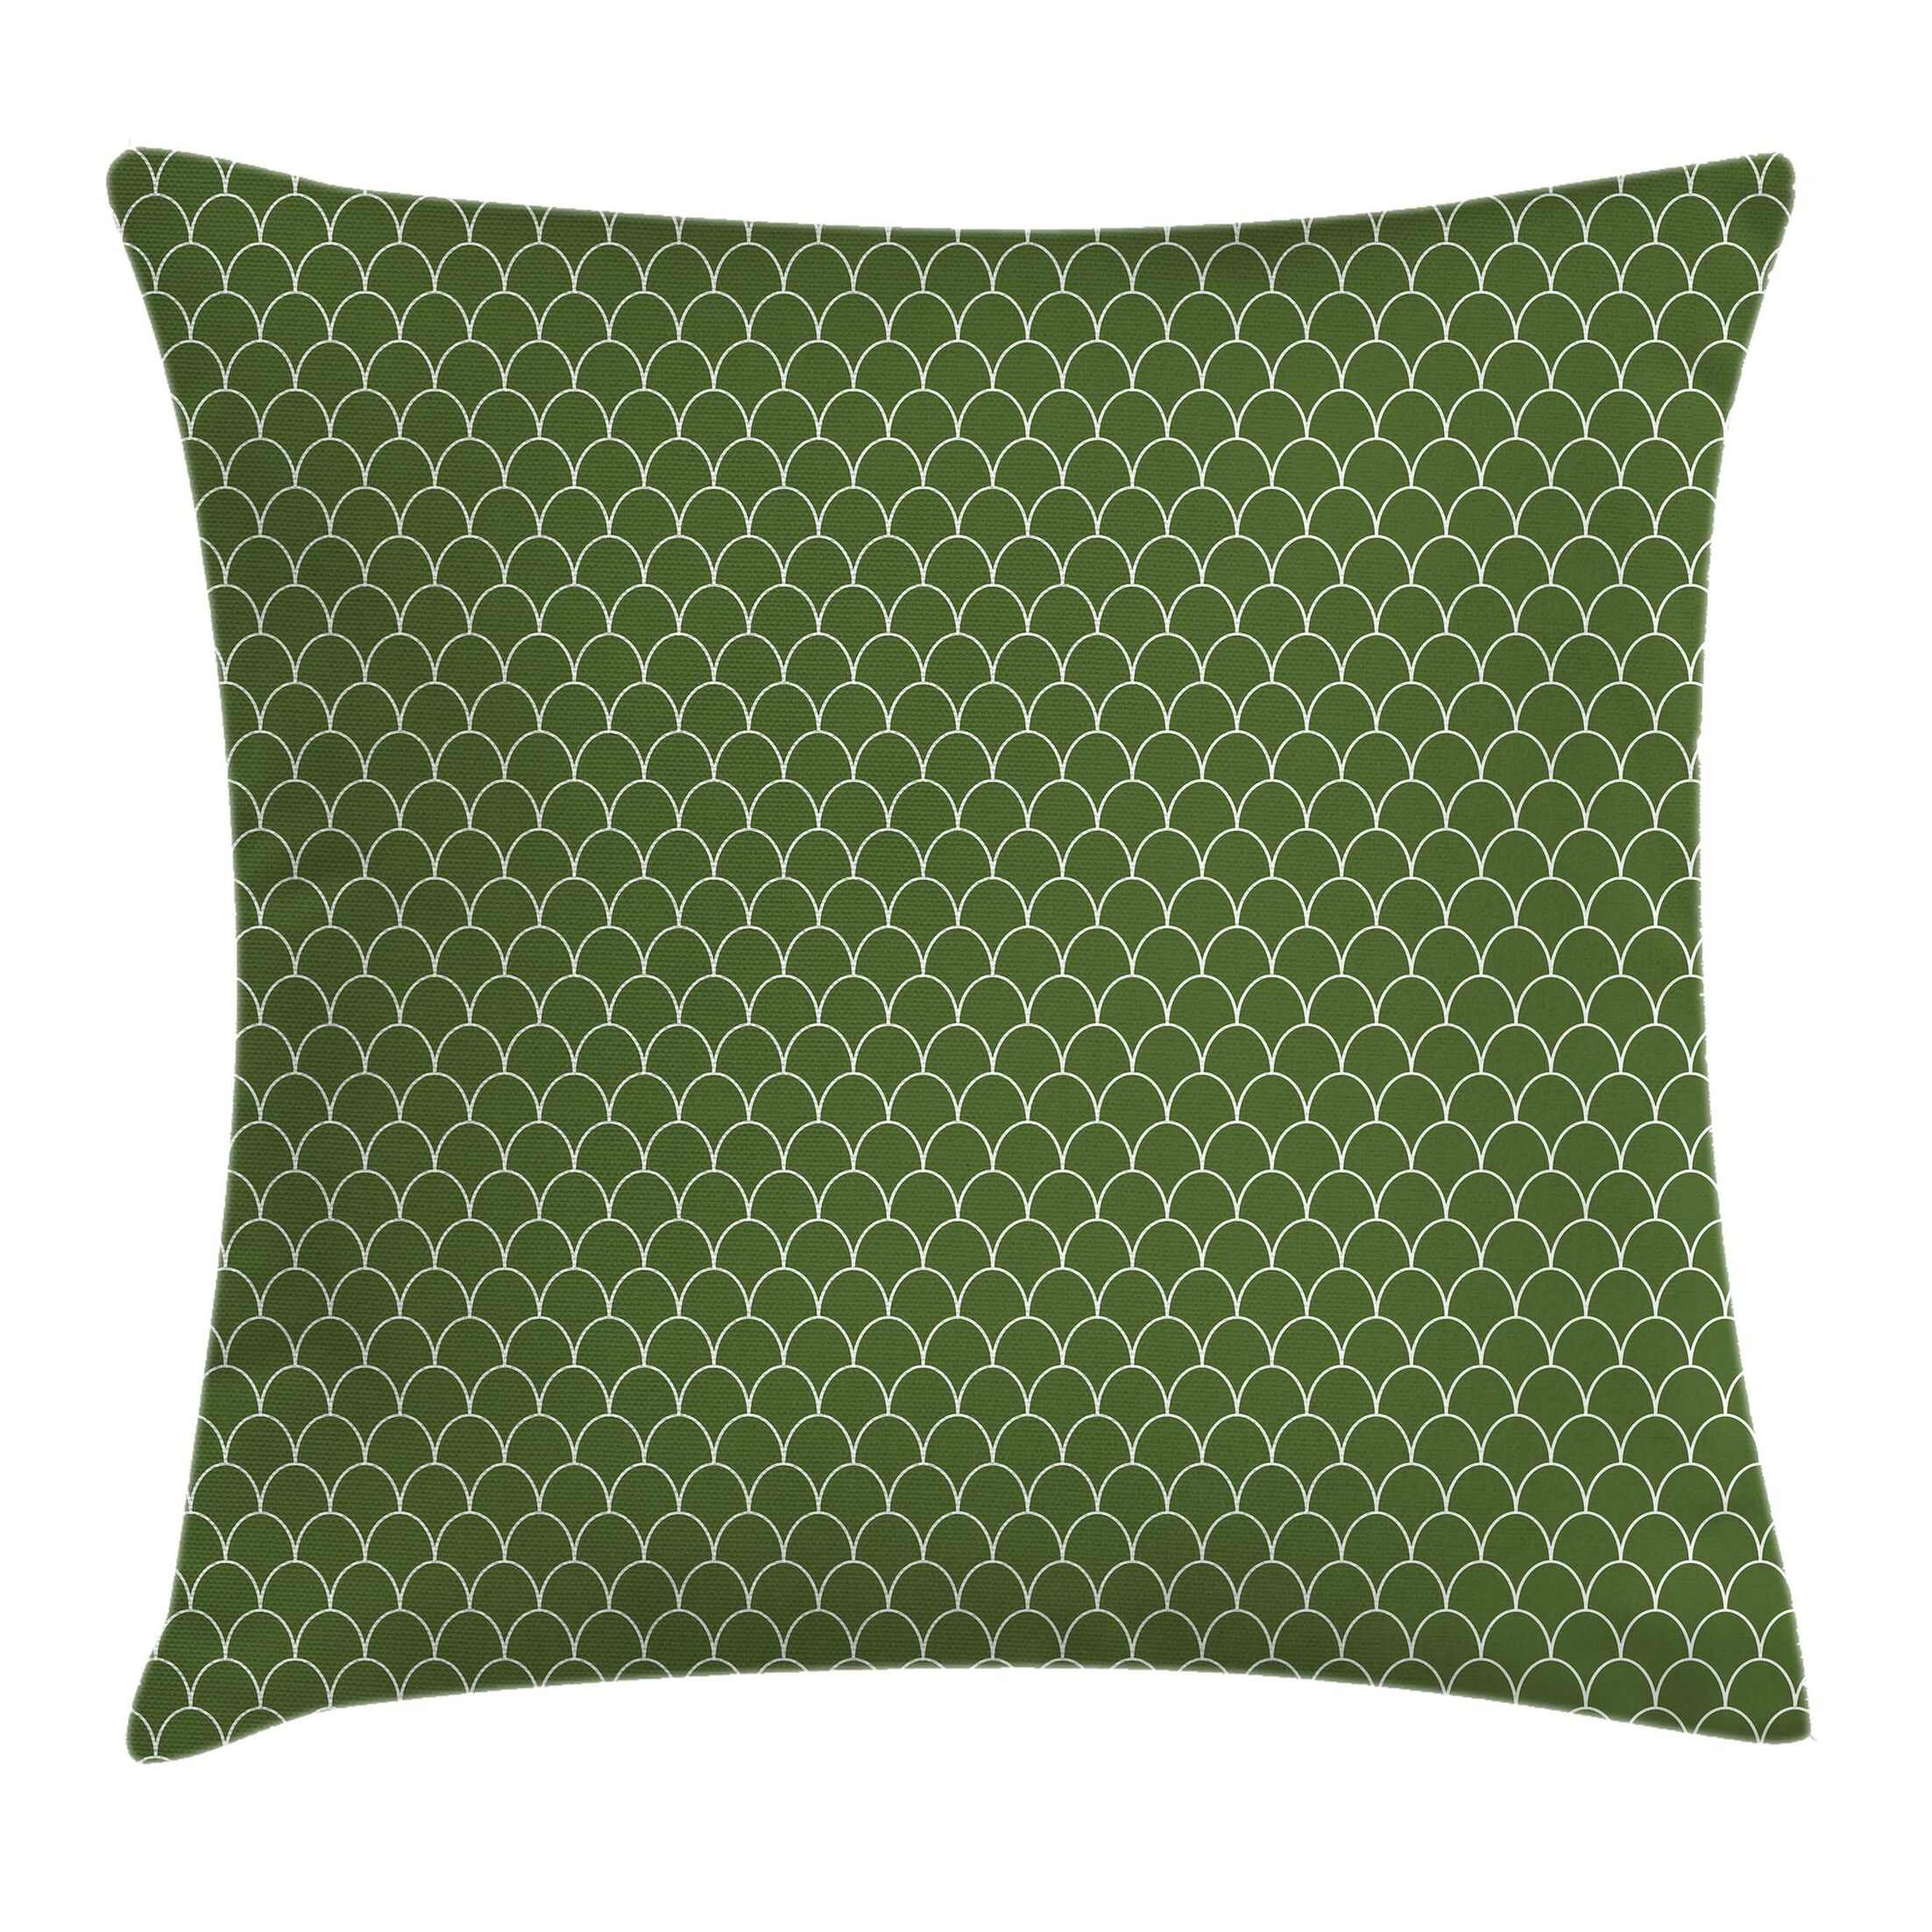 Geometric Wave Like Square Pillow Cover Size: 16